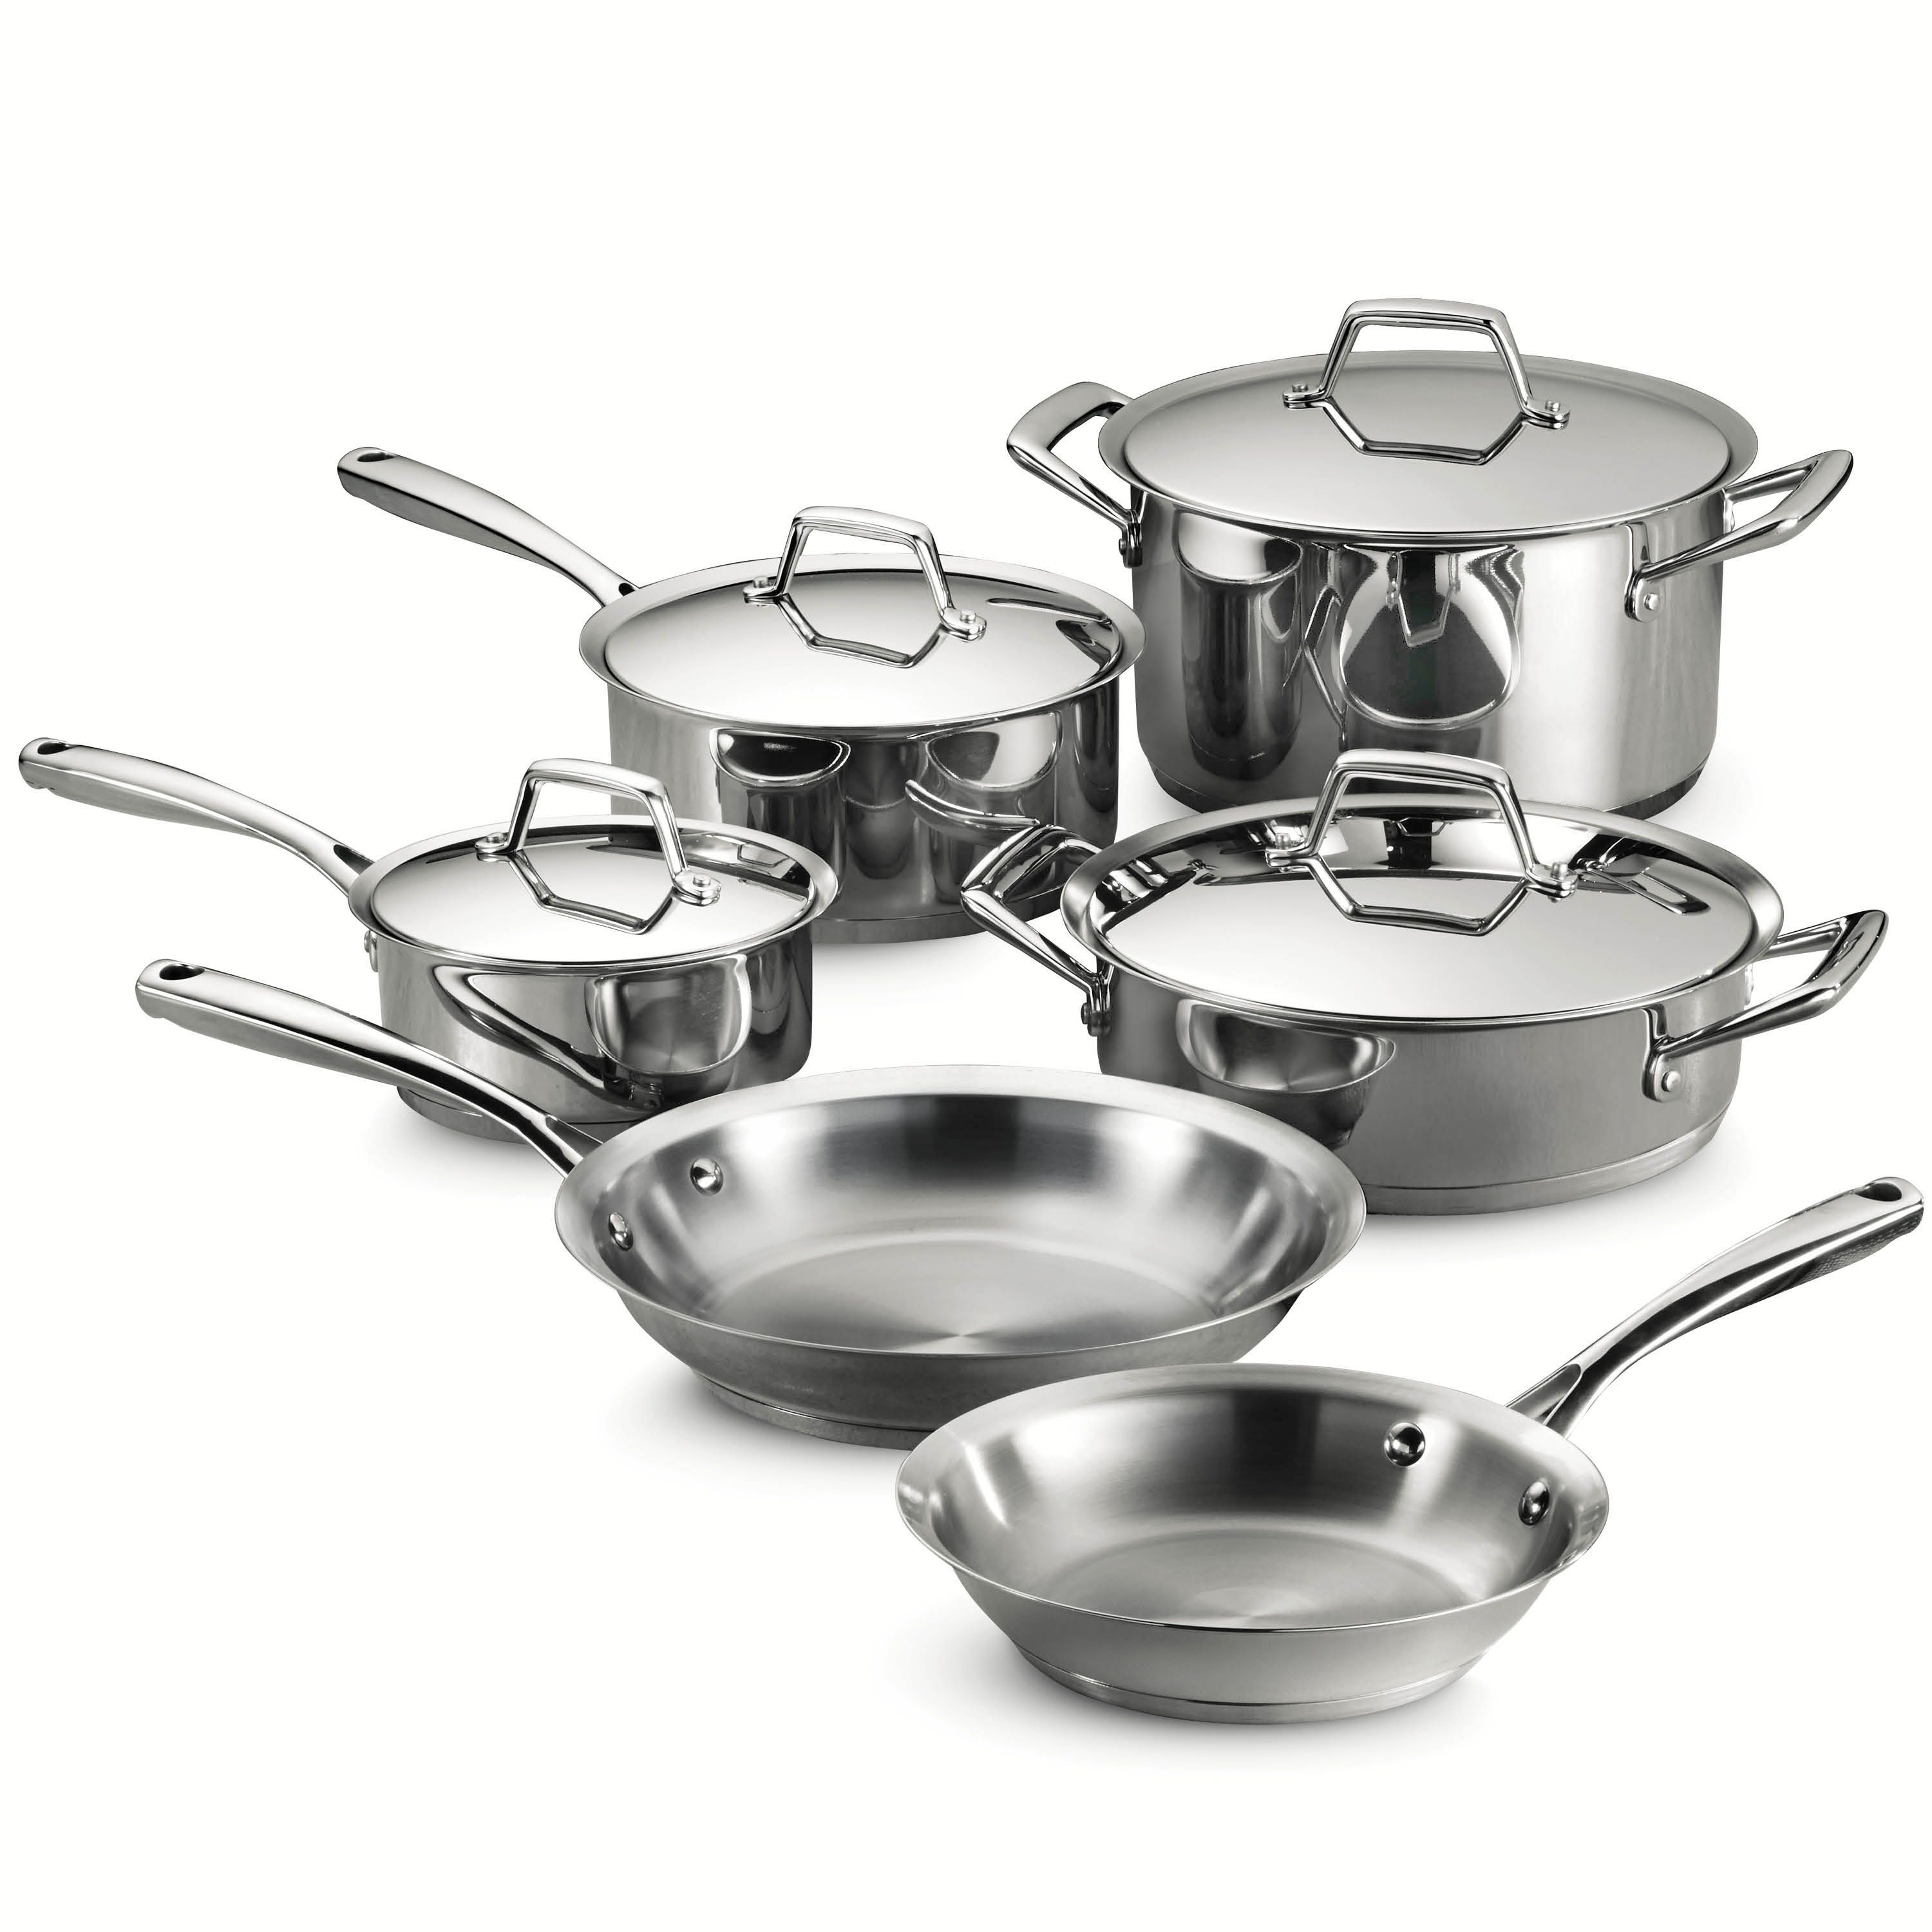 Tramontina Gourmet Prima 18/10 Stainless Steel Tri-Ply Base ...